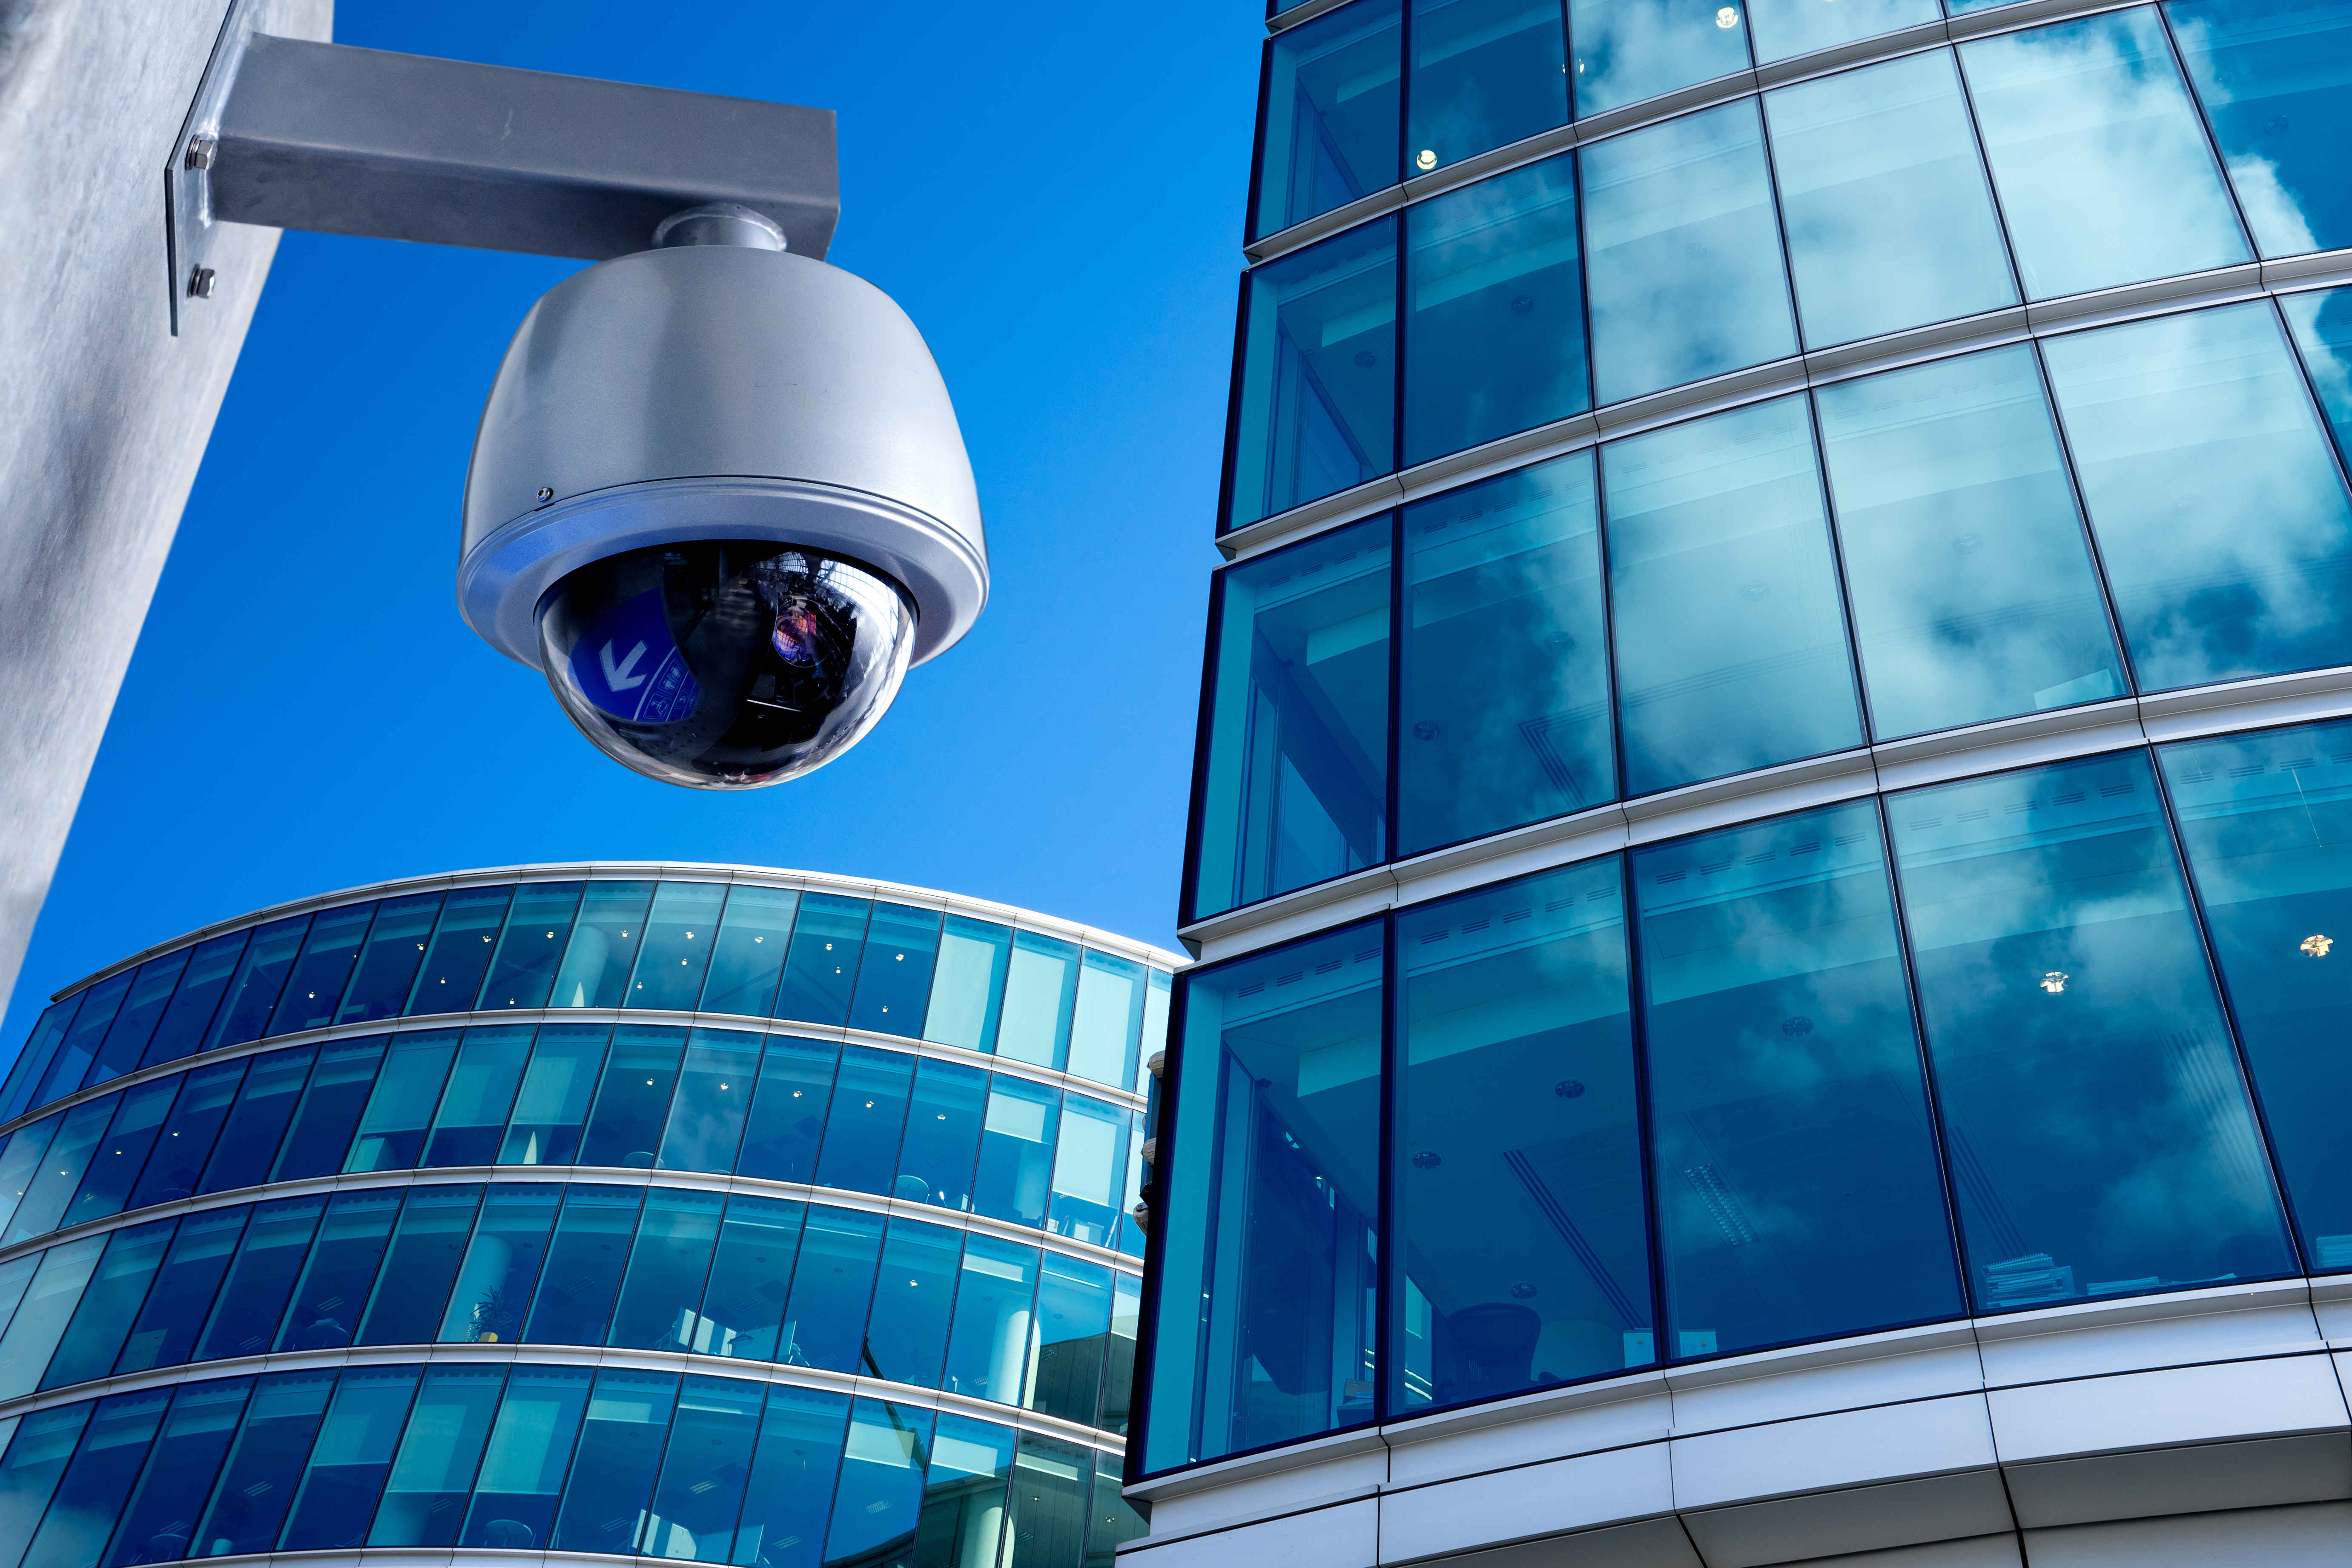 Cctv logic fire and security for Security camera placement tool